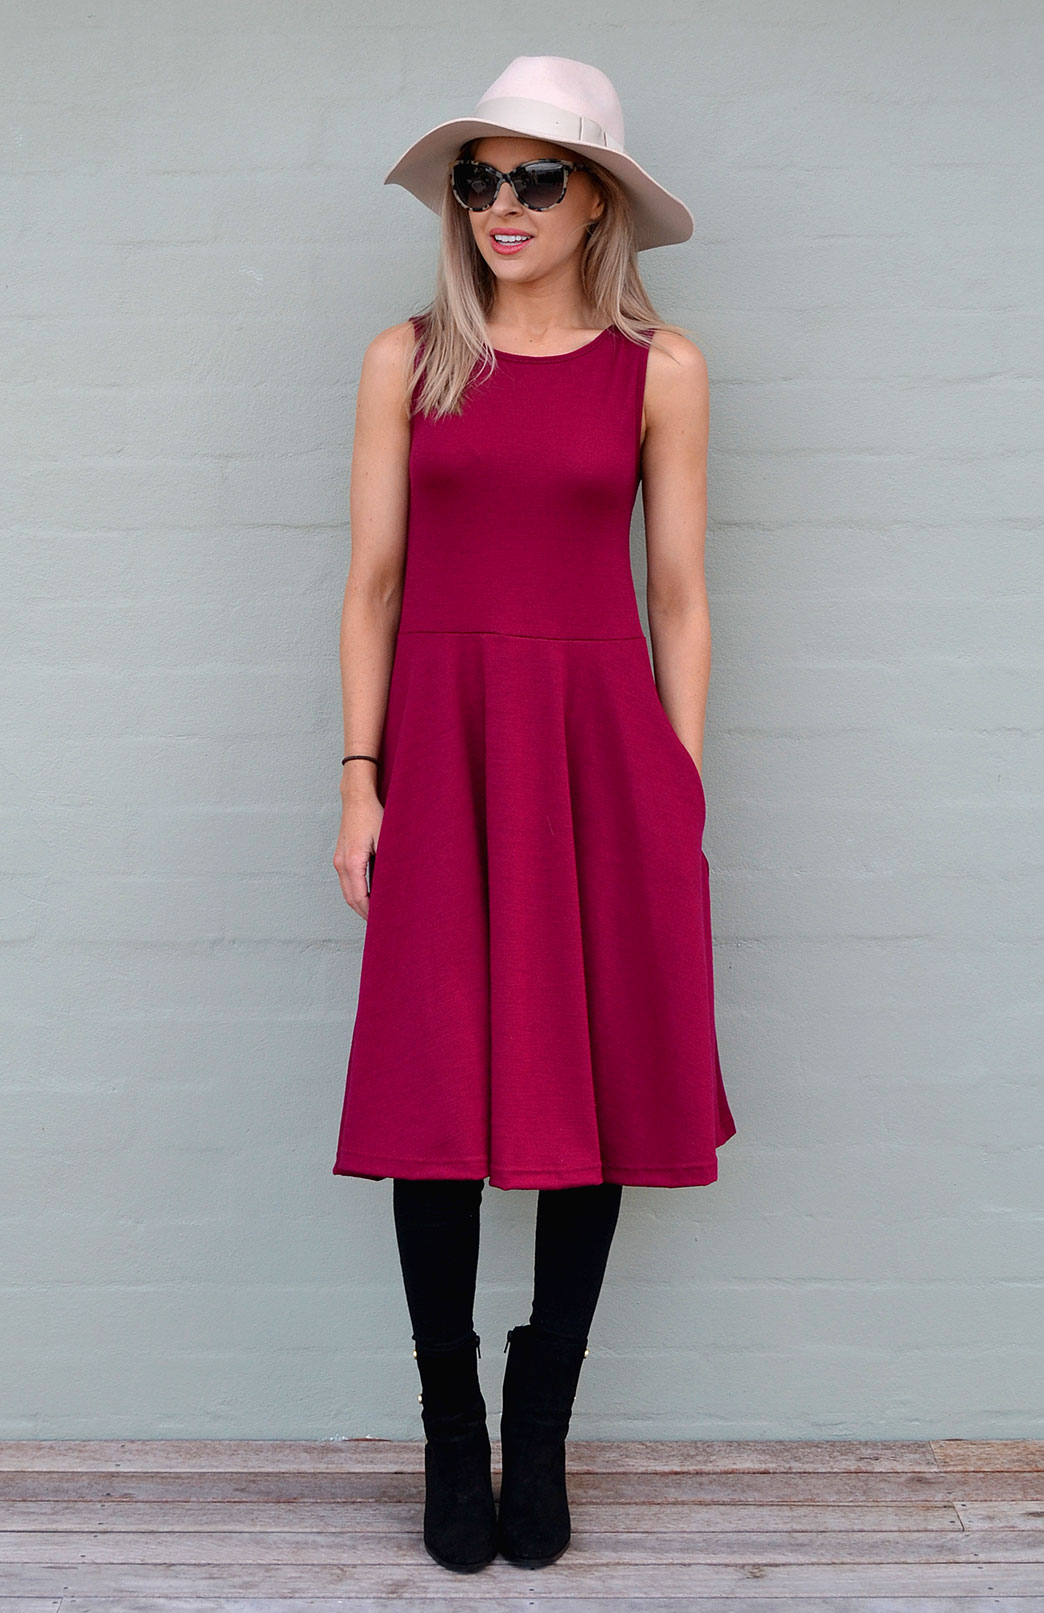 MaryAnn Fit and Flare Dress - Women's Merino Wool Sleeveless Mary Dress with Pockets - Smitten Merino Tasmania Australia